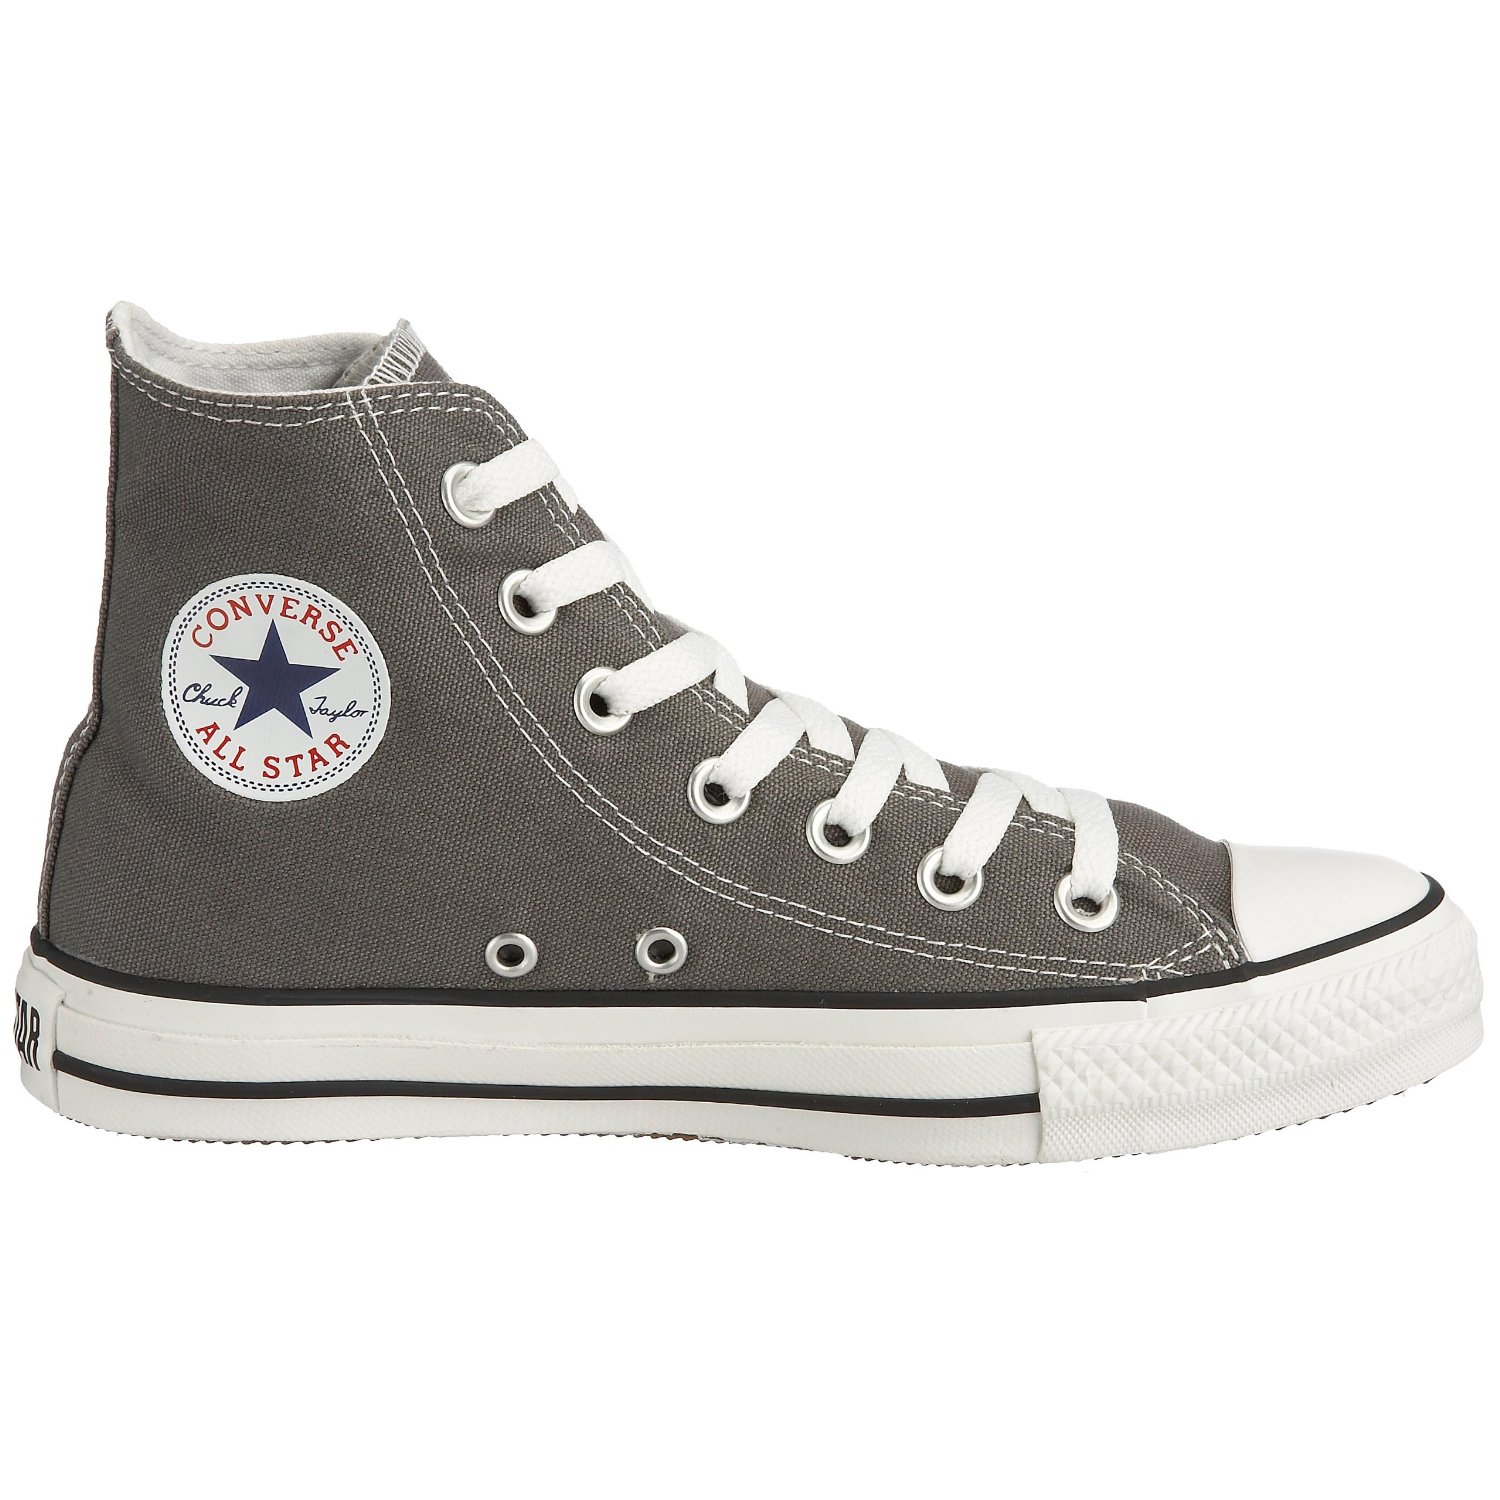 258b295d429a37 Grey Converse All Star Hi Top Shoes - Chuck Taylor Converse Trainers ...